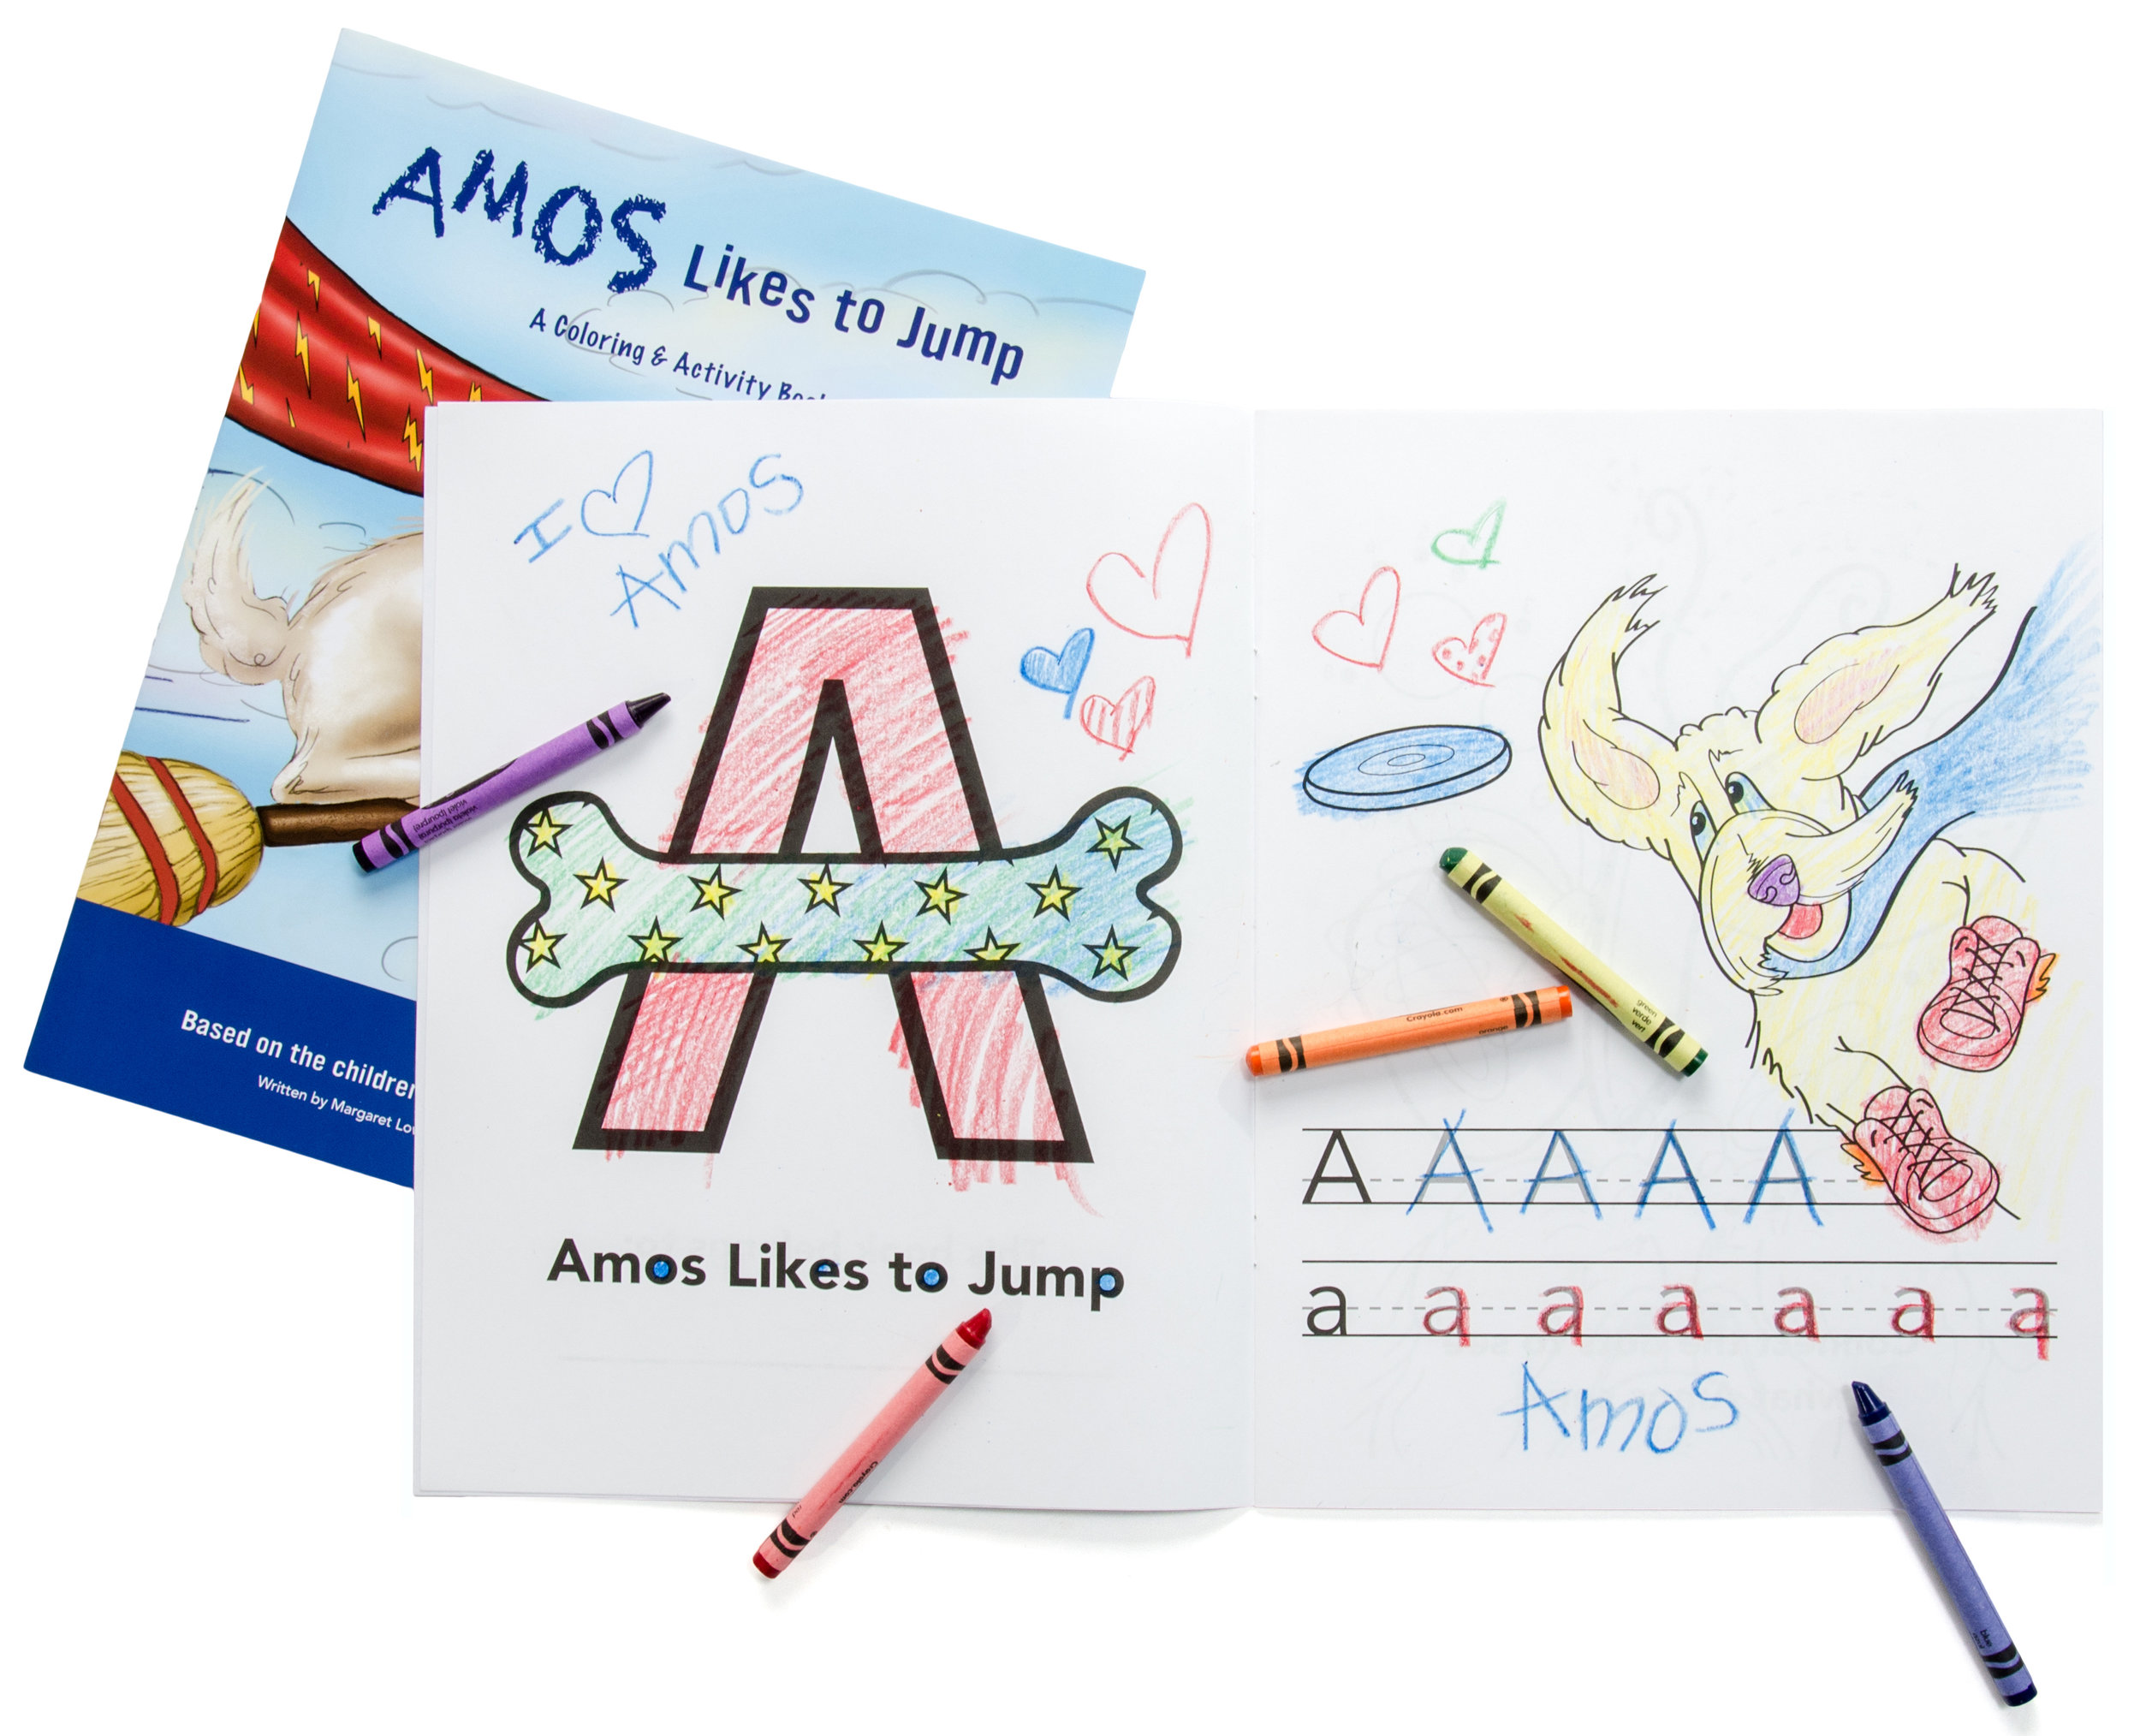 Amos_%22Likes to Jump%22_Coloring Book _ inside _02.jpg